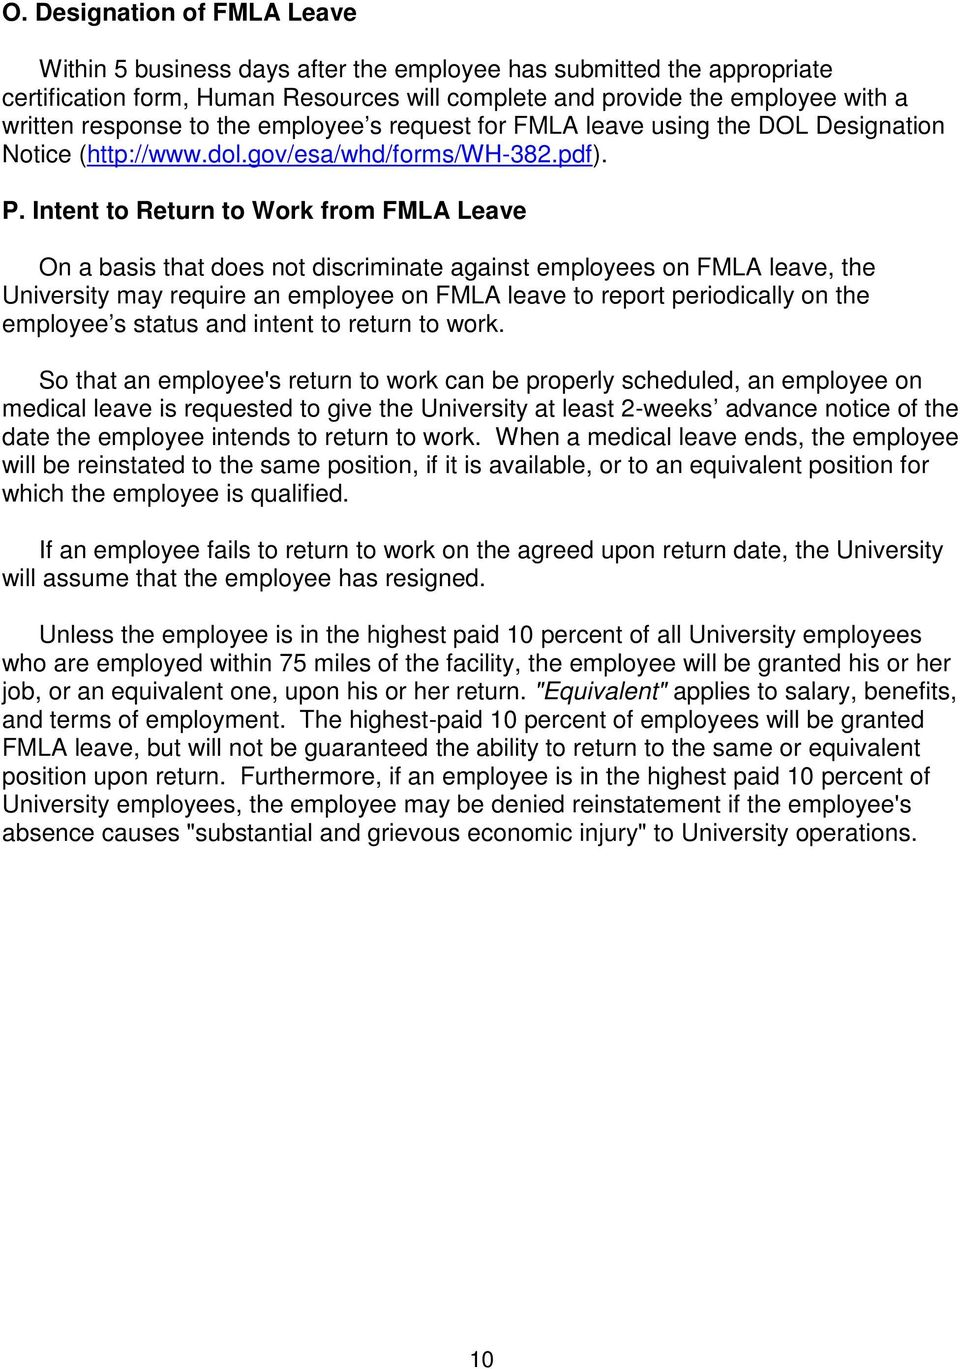 Intent to Return to Work from FMLA Leave On a basis that does not discriminate against employees on FMLA leave, the University may require an employee on FMLA leave to report periodically on the